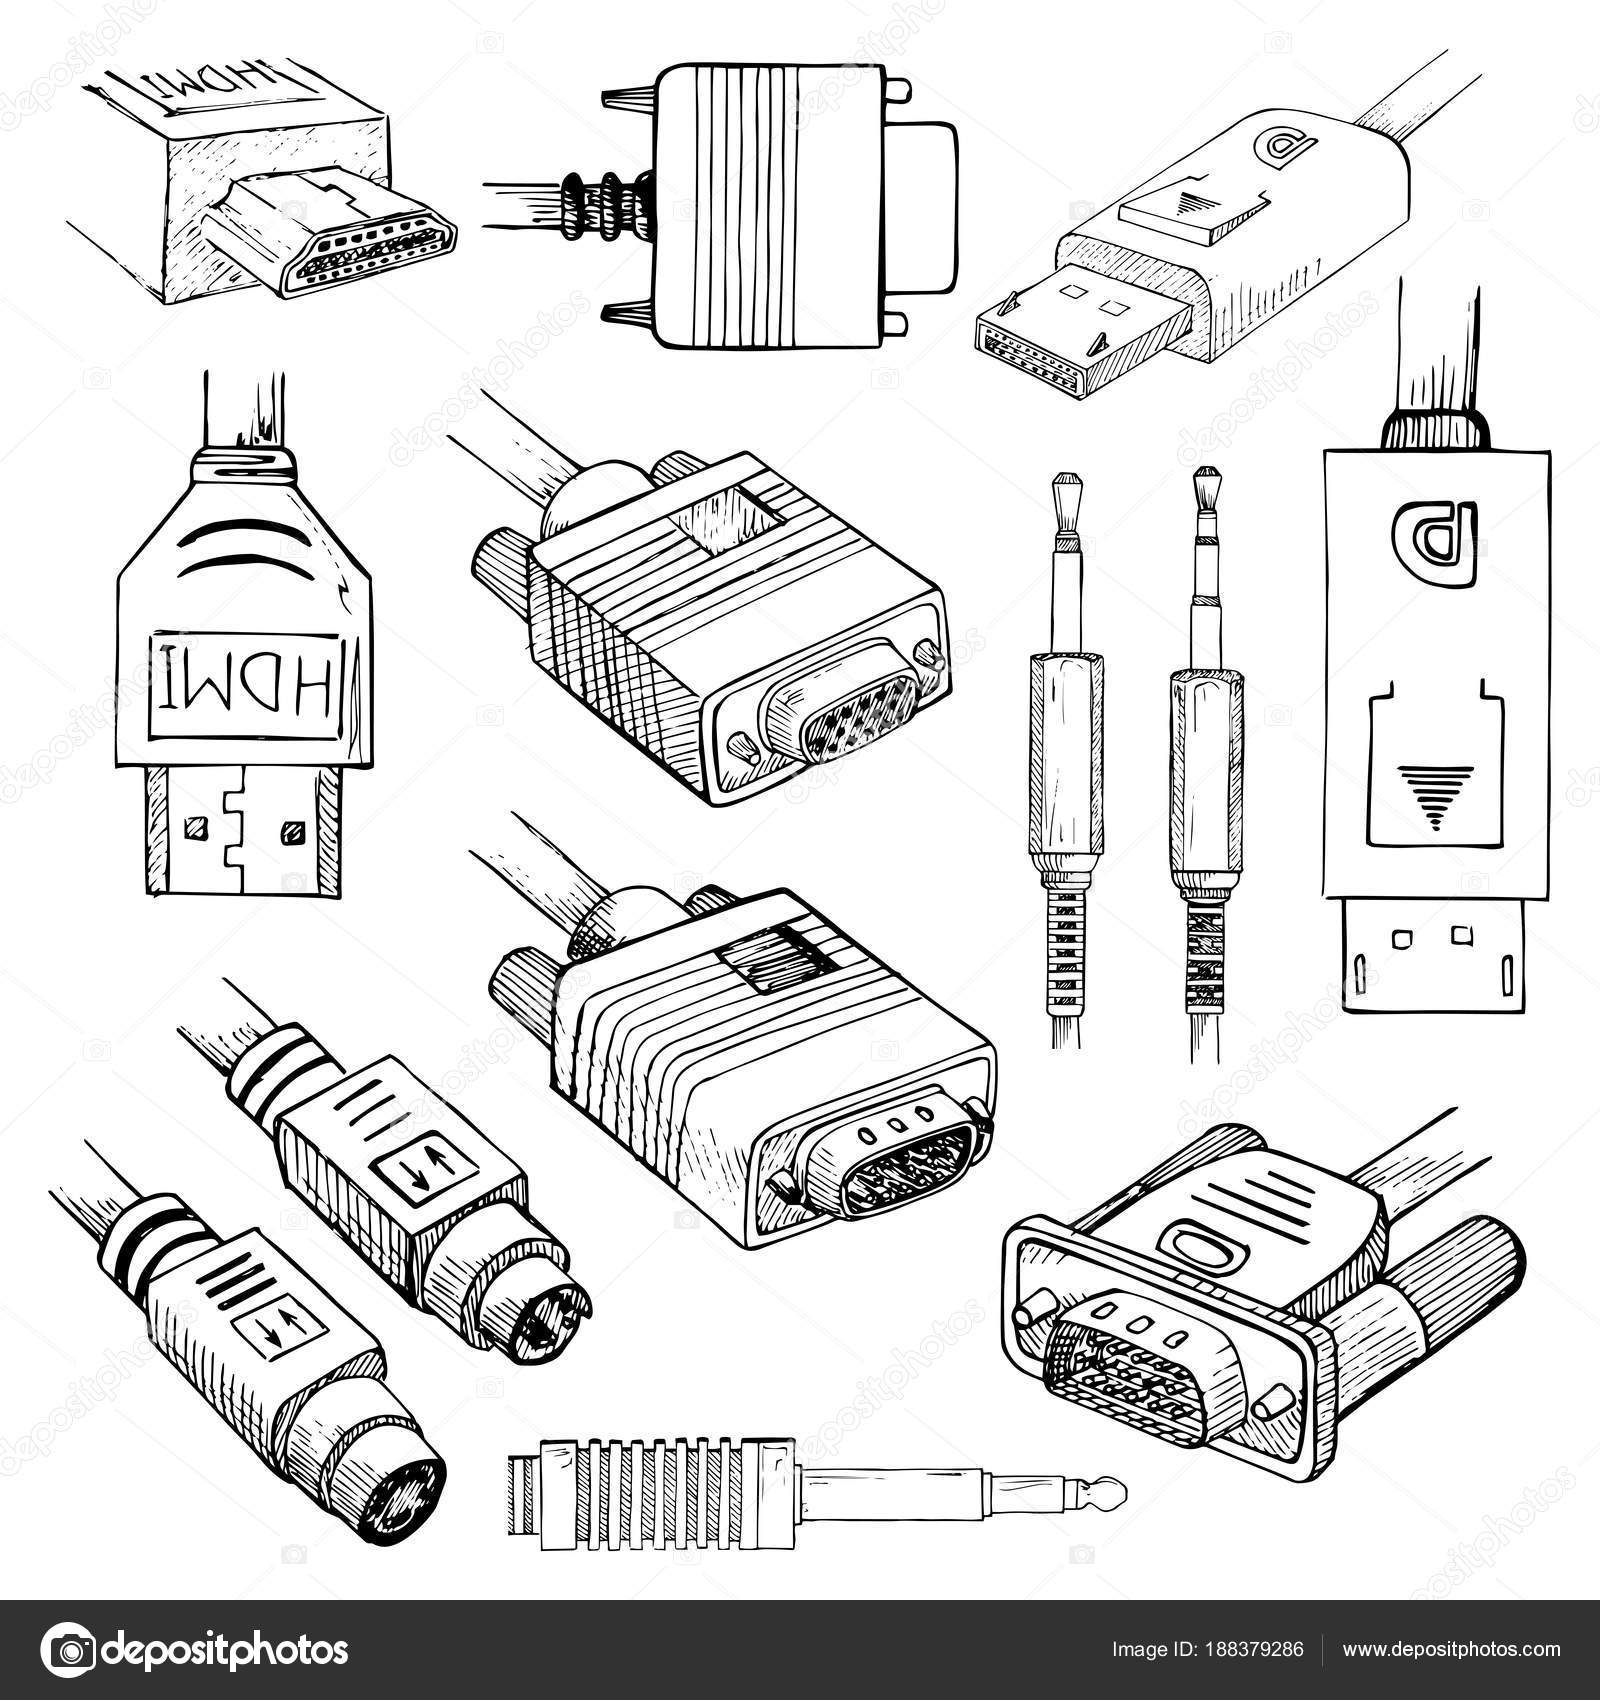 wiring diagram of hdmi cable